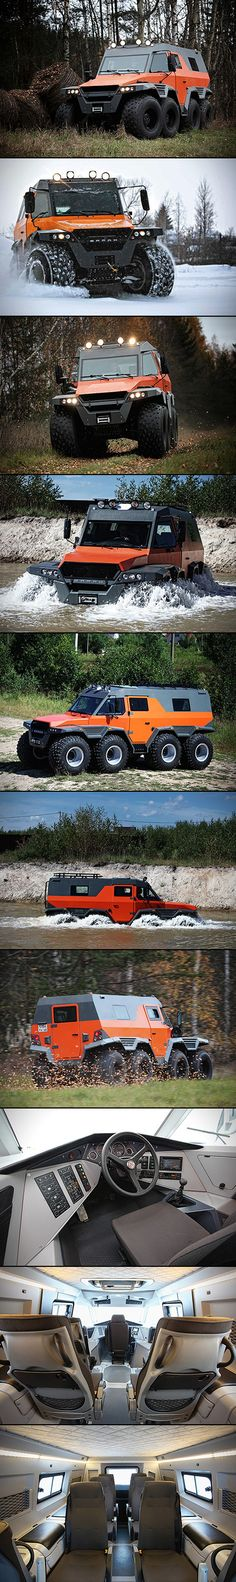 Avtoros Shaman 8×8 all-terrain vehicle – the end all, be all for ATVs.  Measuring in at 6 meters long, 3 meters high, and 2.5 meters wide, this 2.5-ton beast can tackle literally any terrain, from land and snow right down to floating through water. The vehicle is powered by an Iveco F1C 3.0-liter turbo diesel that pumps out 146-horsepower through a 6-speed manual gearbox